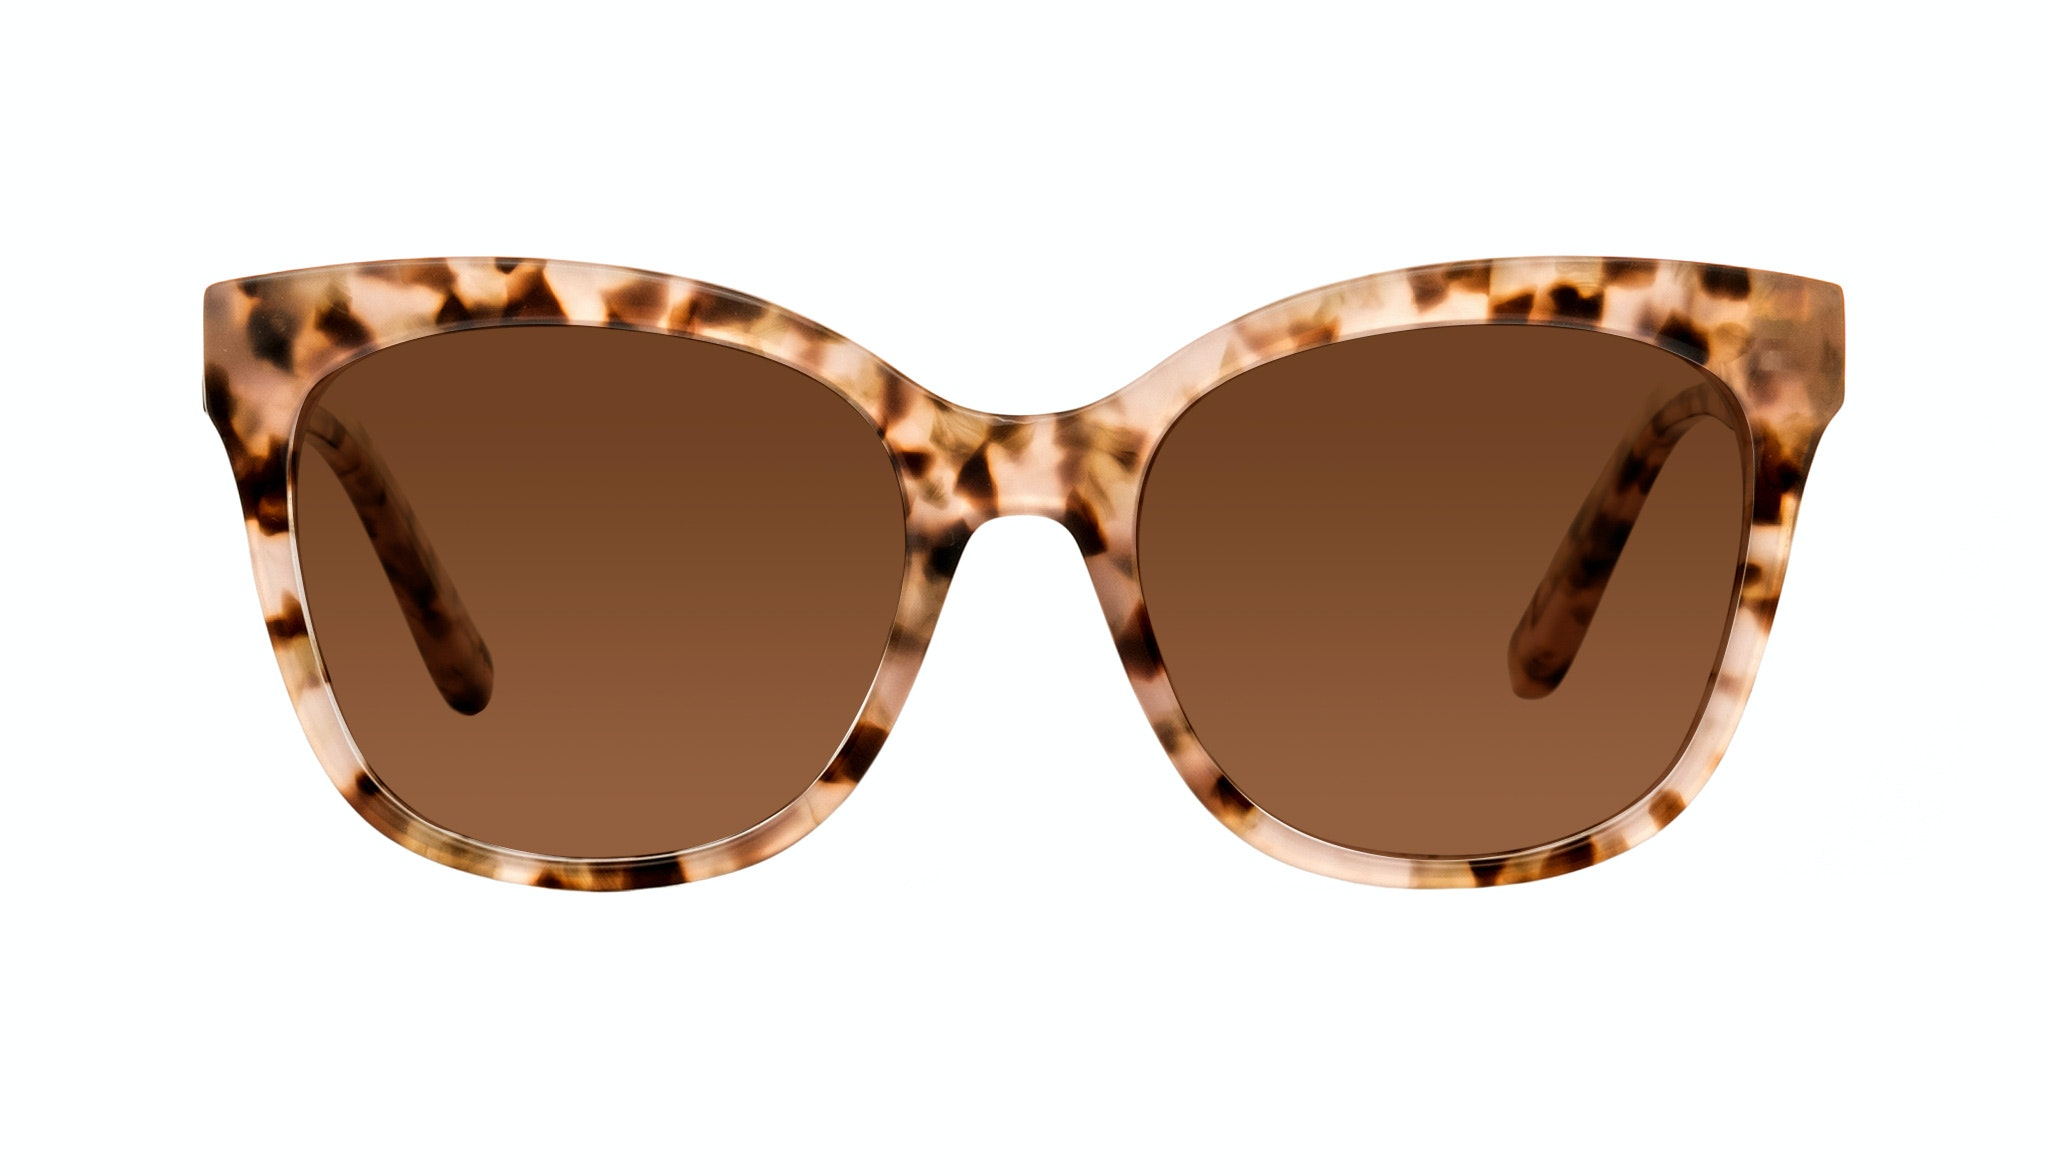 Affordable Fashion Glasses Rectangle Square Sunglasses Women Breezy Pink Leopard